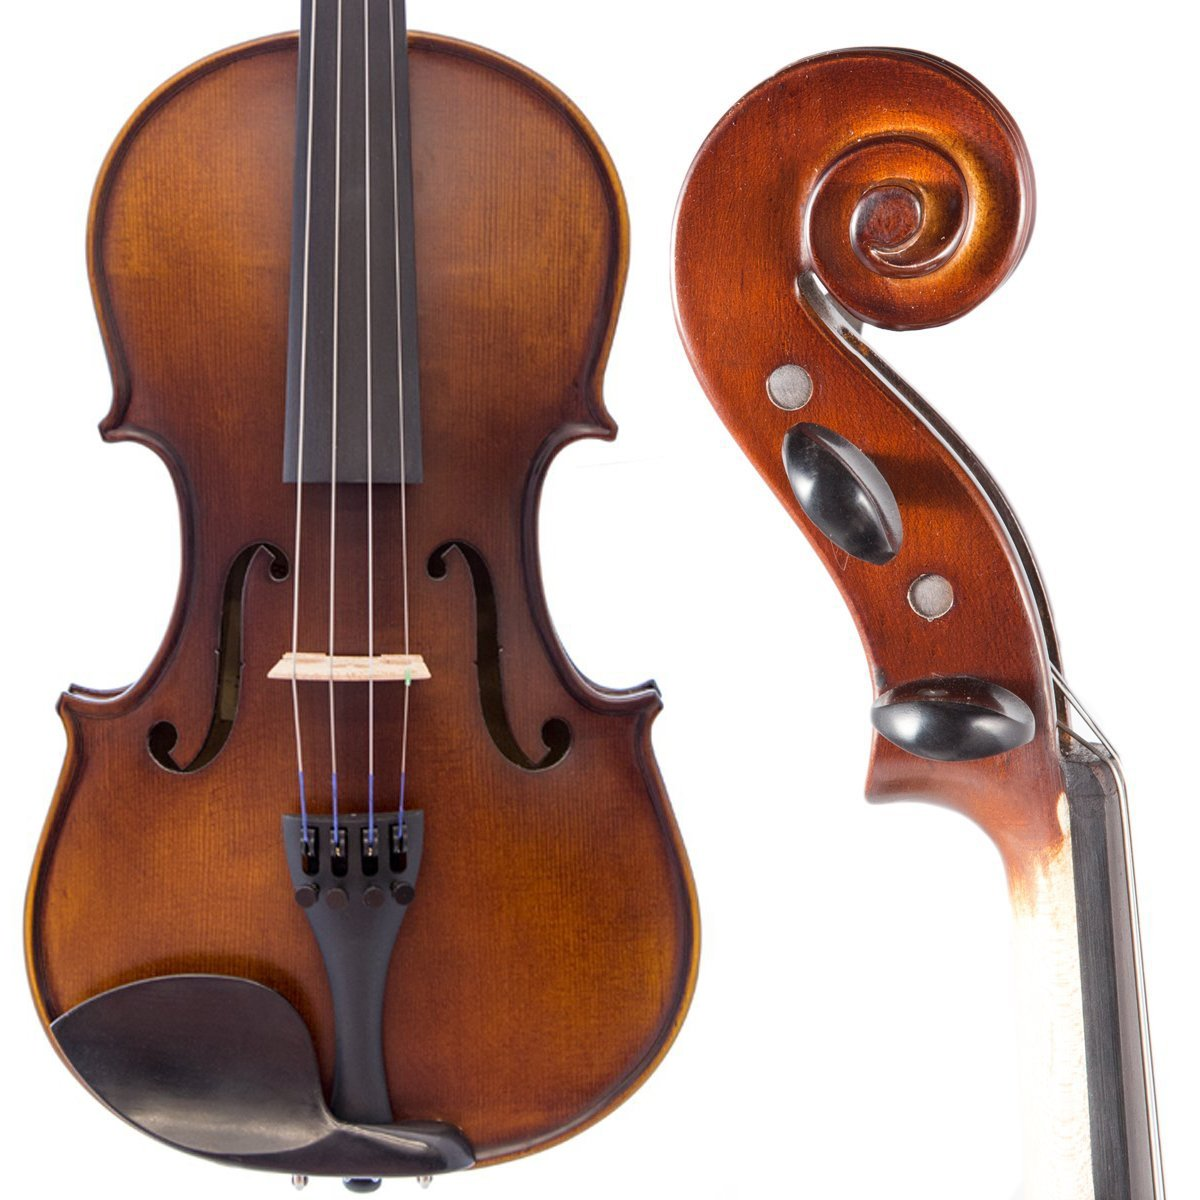 Bunnel Pupil Student Violin Outfit 4/4 (Full) Size by Kennedy Violins (Image #2)